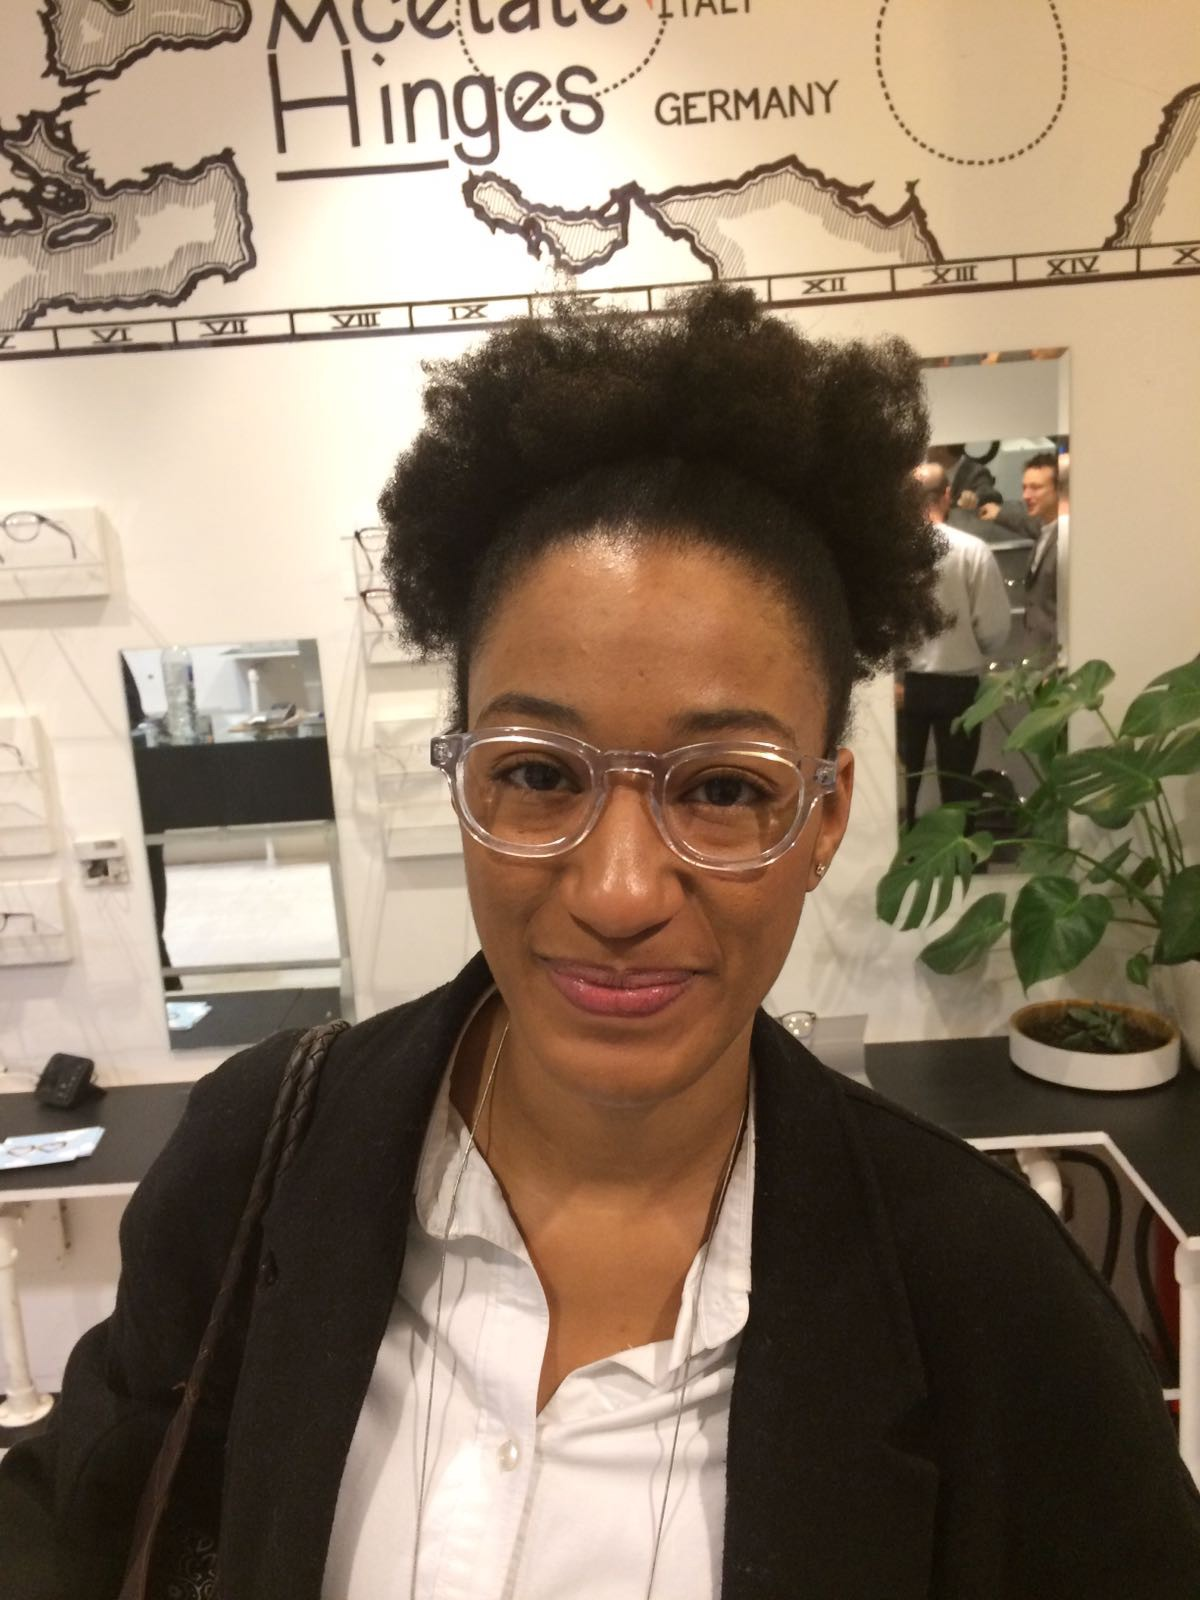 A picture of Krystle McGilvery wearing glasses and smiling